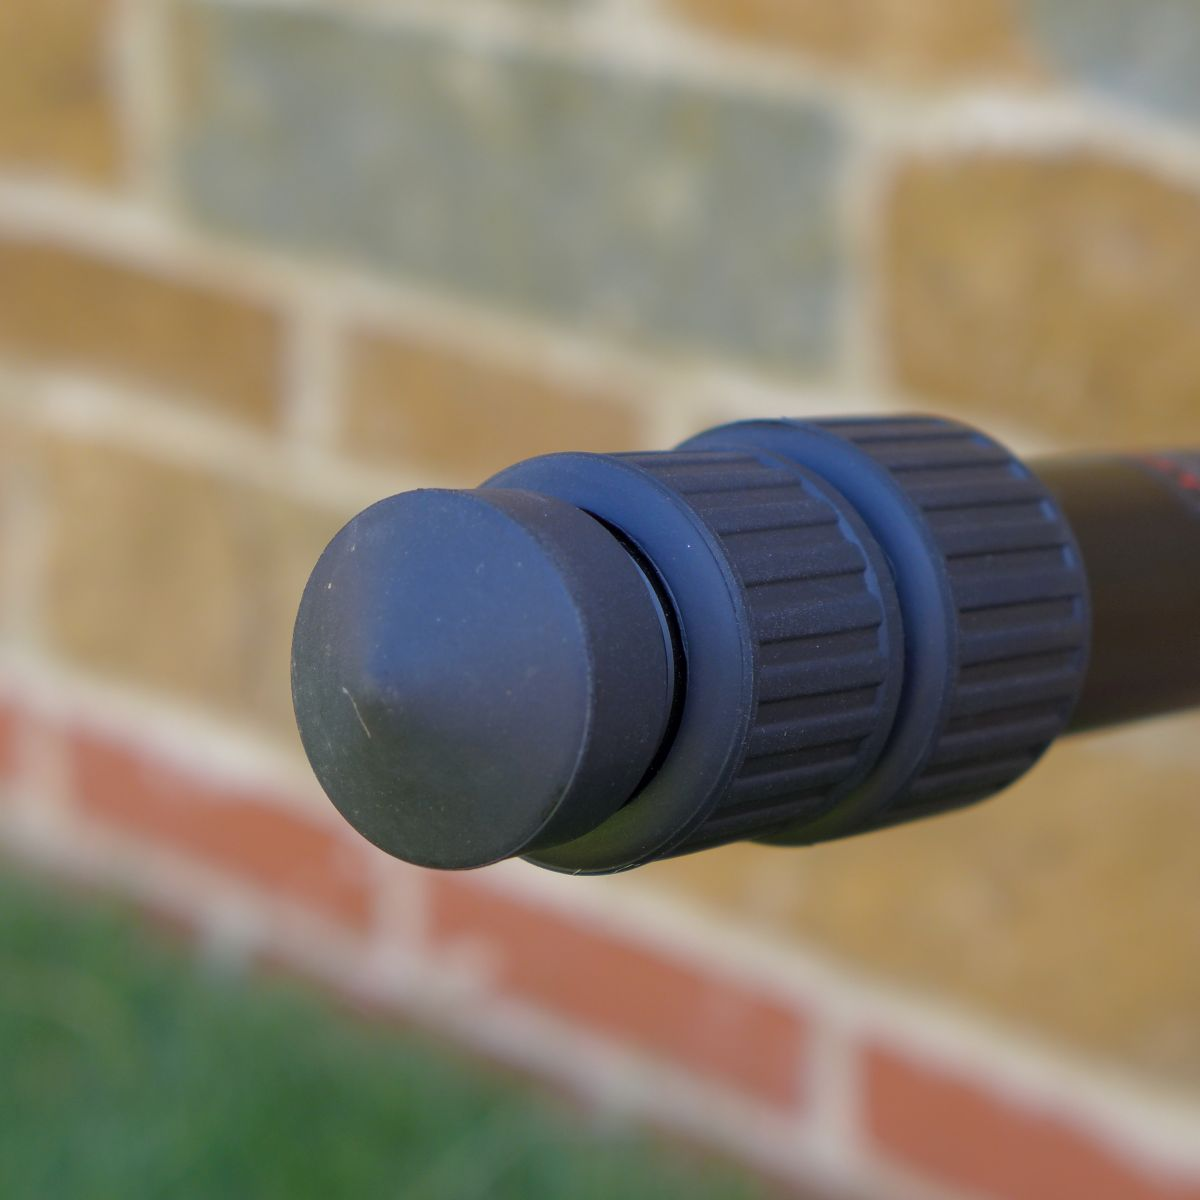 Rubber feet can be unscrewed and replaced with the included stainless steel spikes